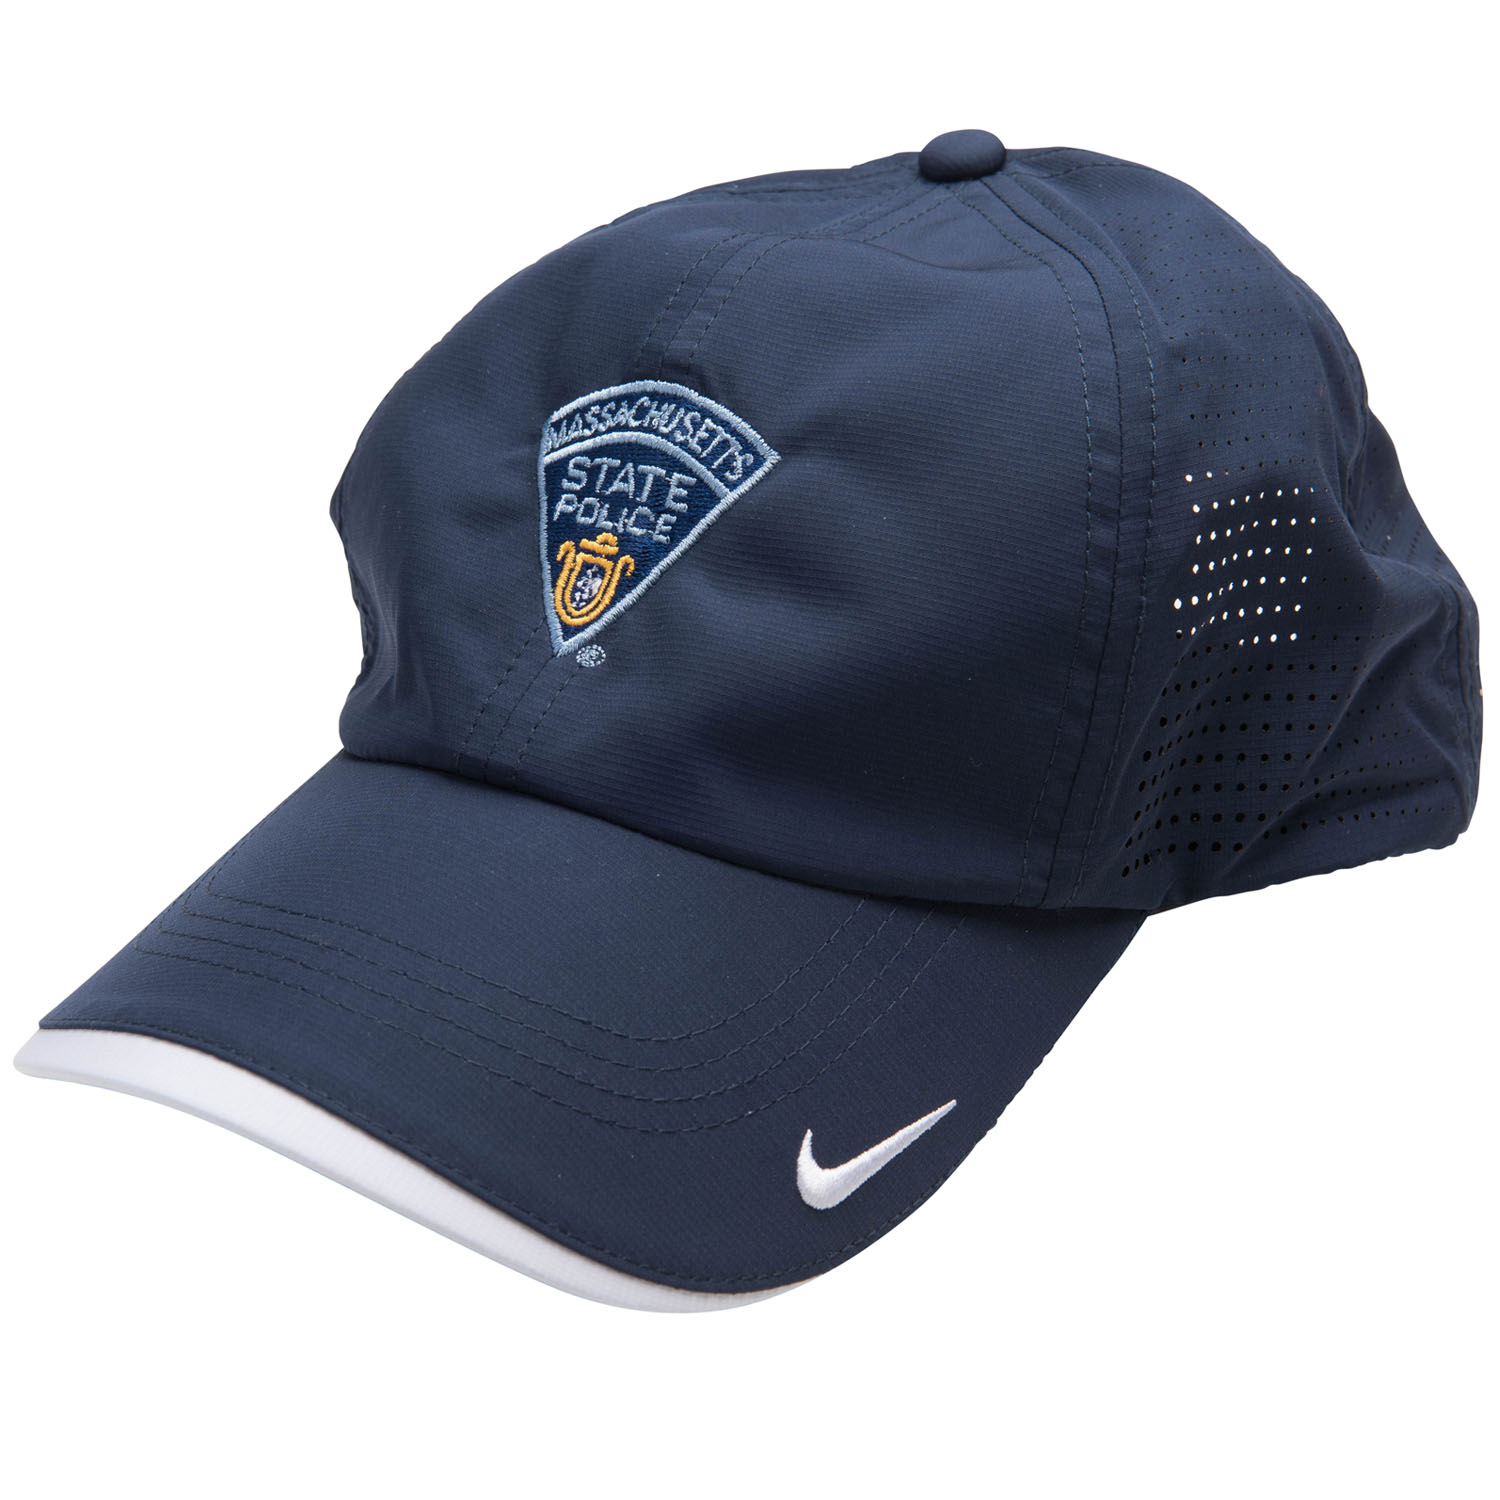 Mens nike golf hat mhq mhq mens nike golf hat altavistaventures Gallery